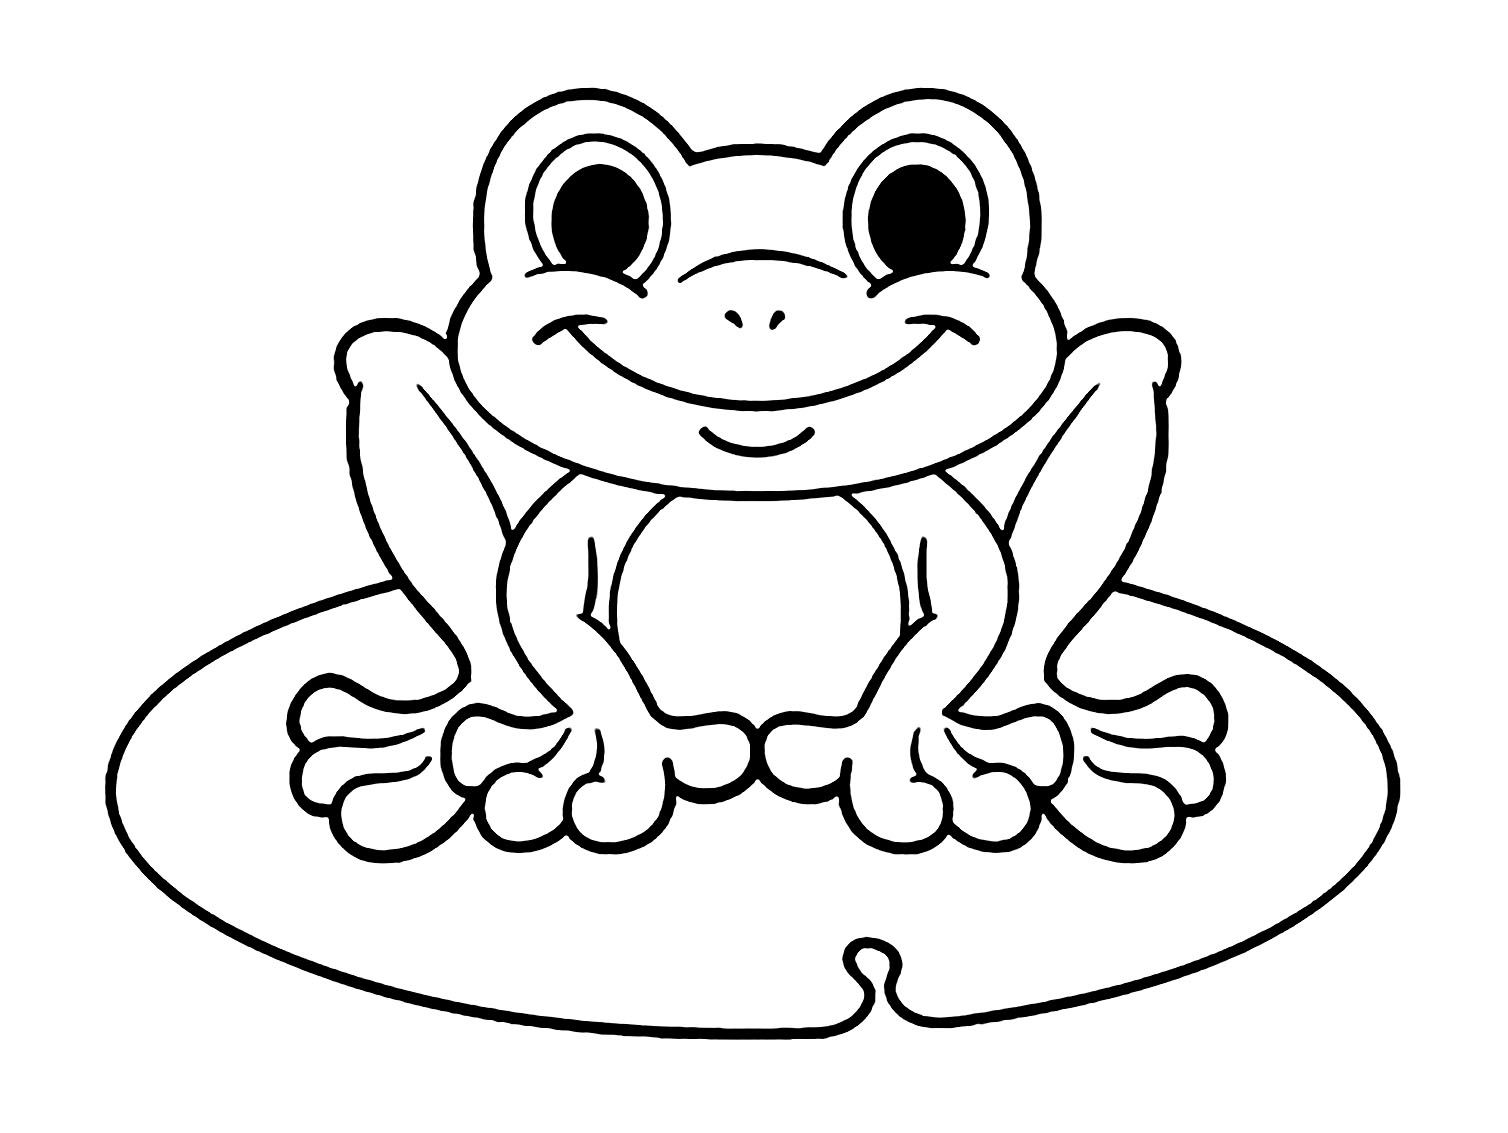 Coloring Of The Frog